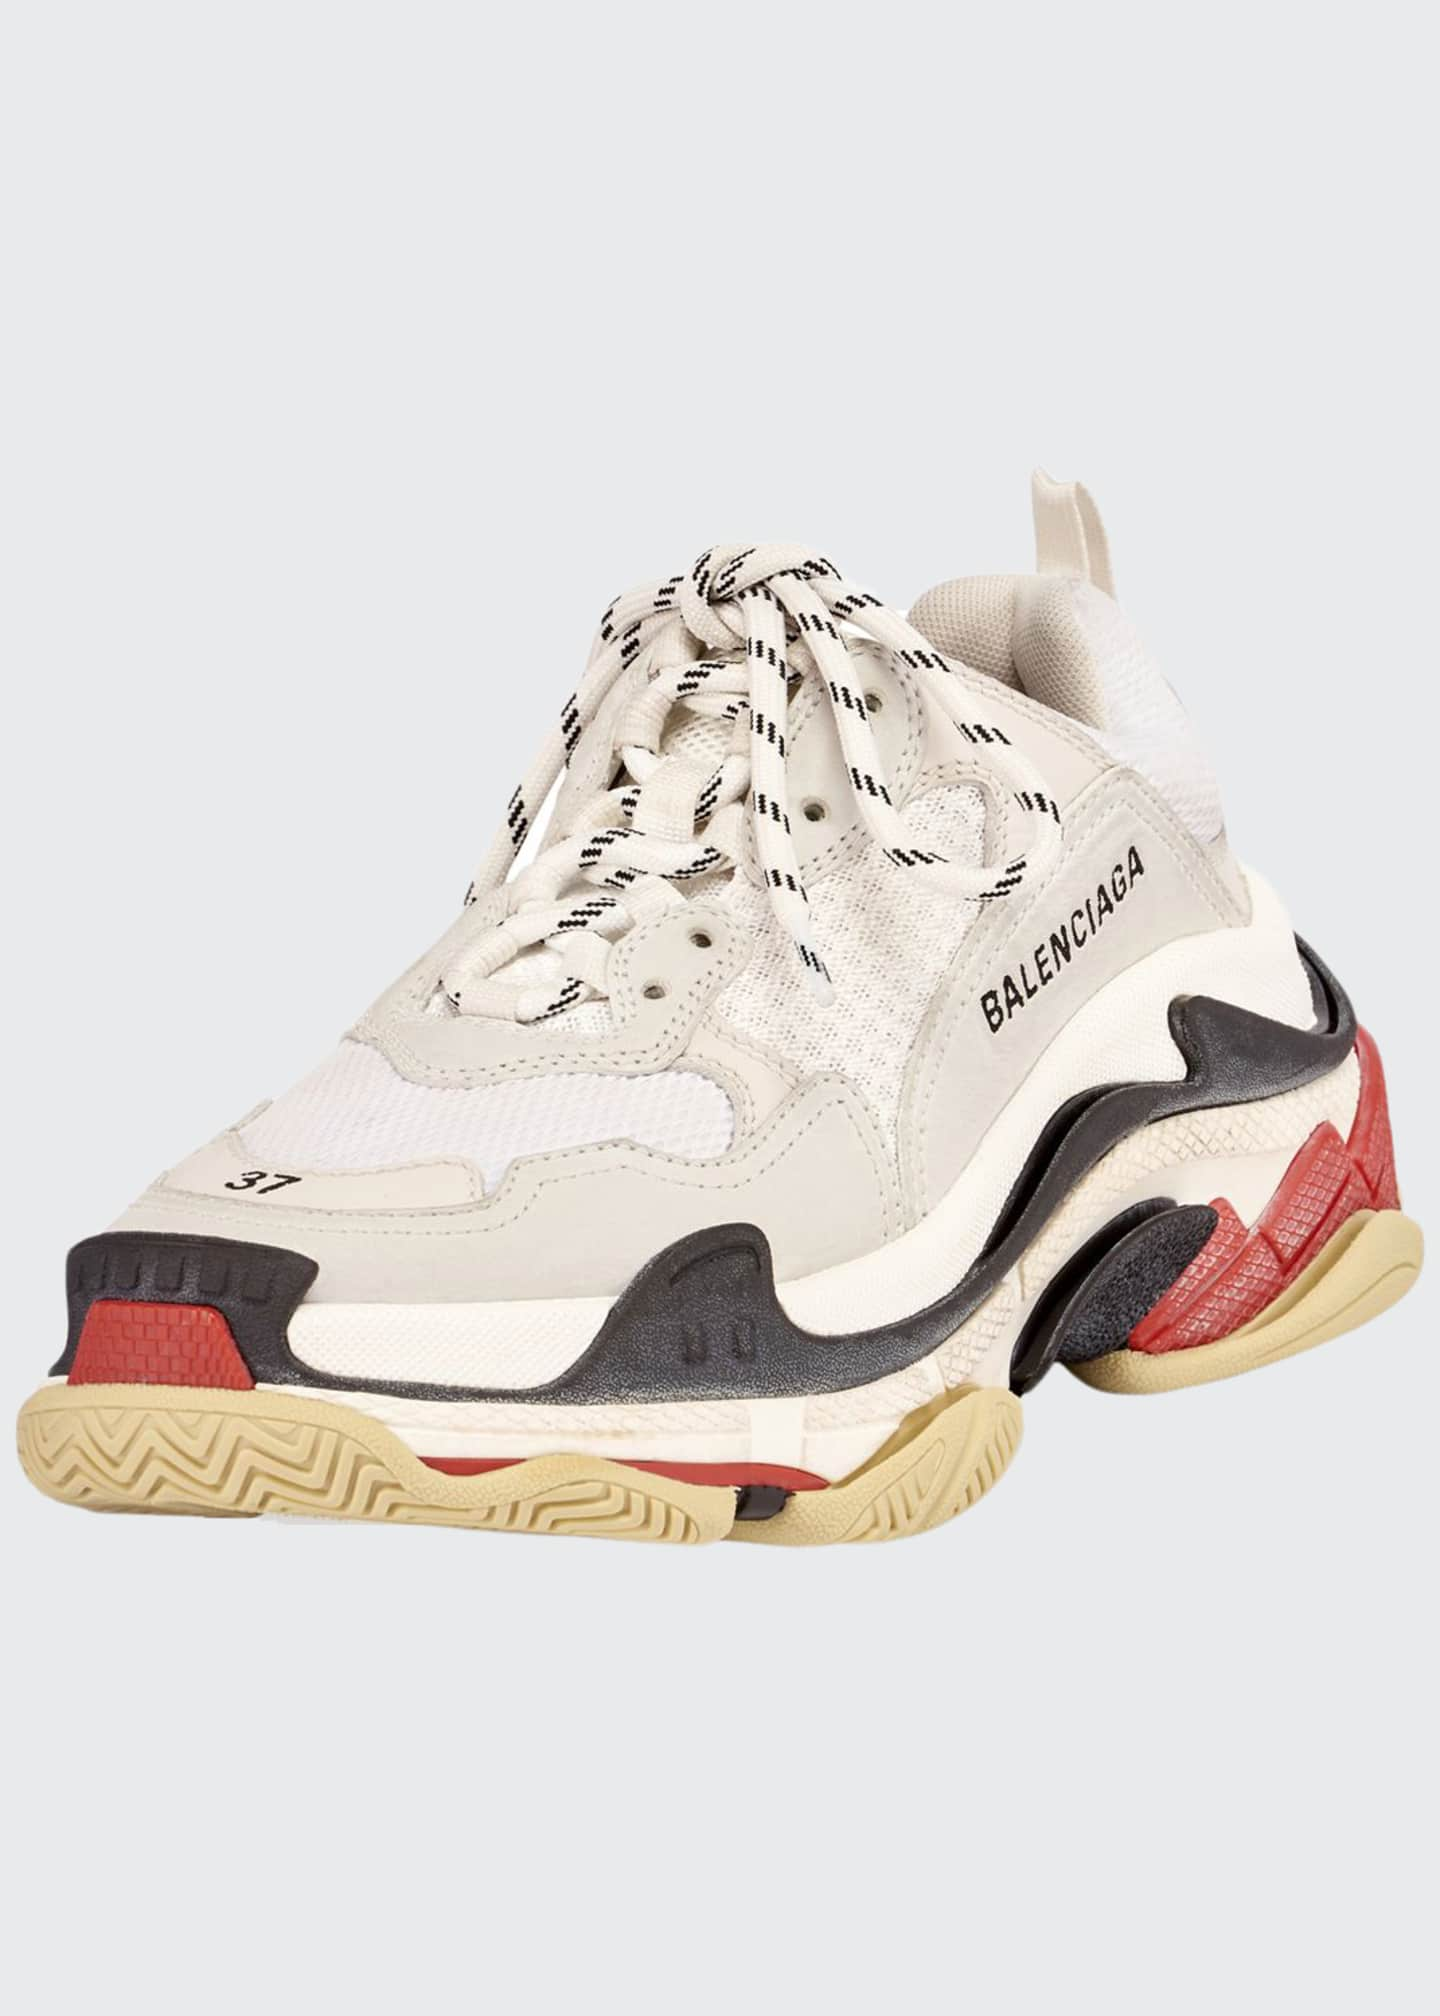 Balenciaga Triple S Mesh & Leather Trainer Sneakers